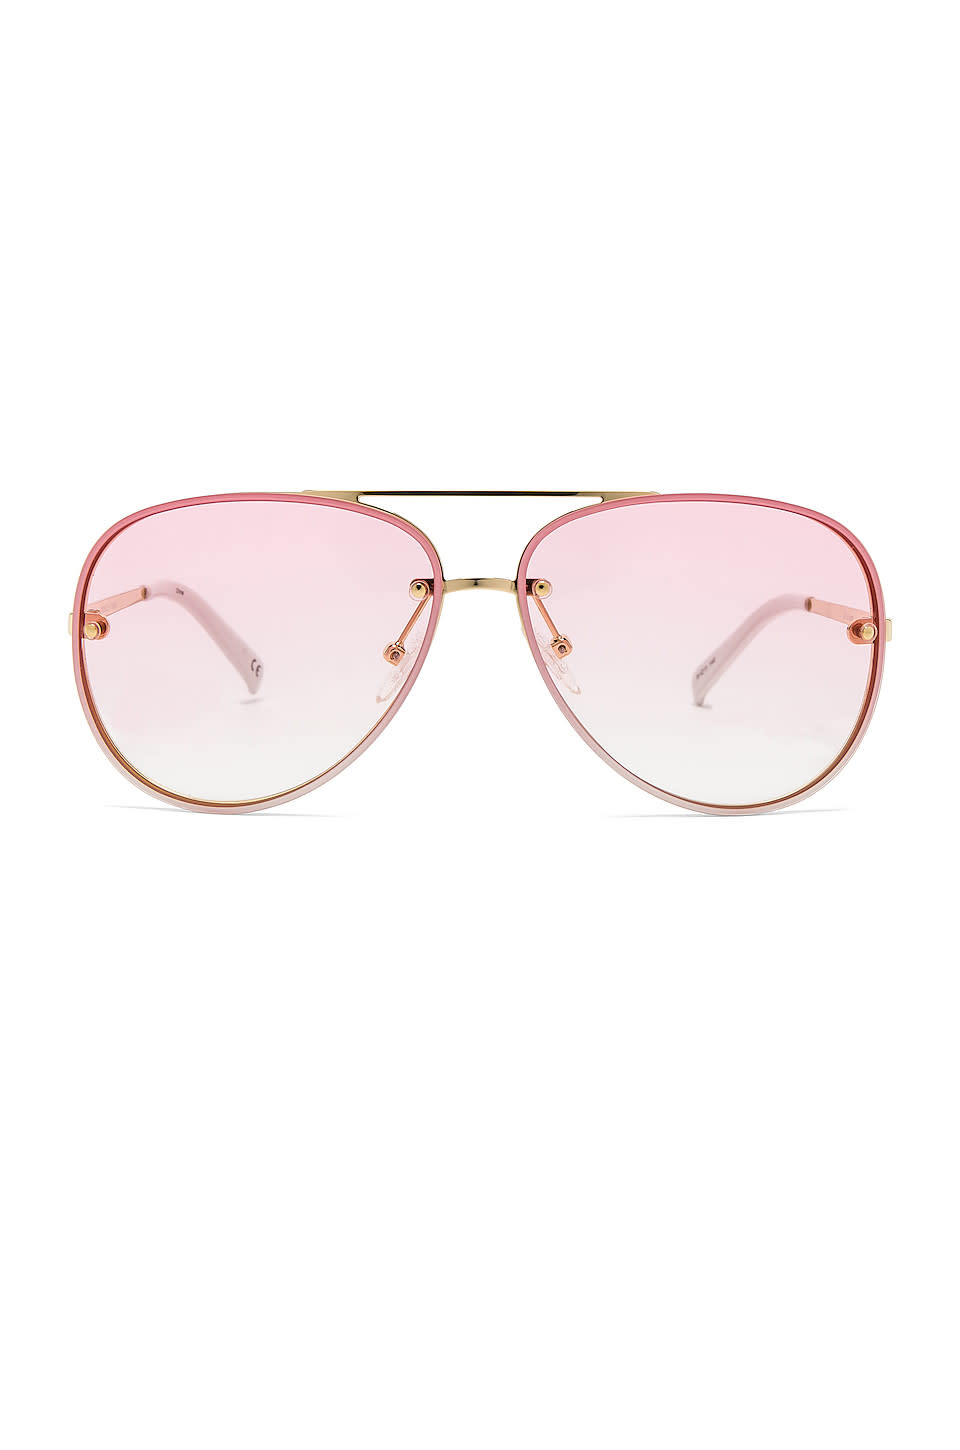 Le Specs HYPERSPACE BRIGHT GOLD / WHITE PINK GRAD